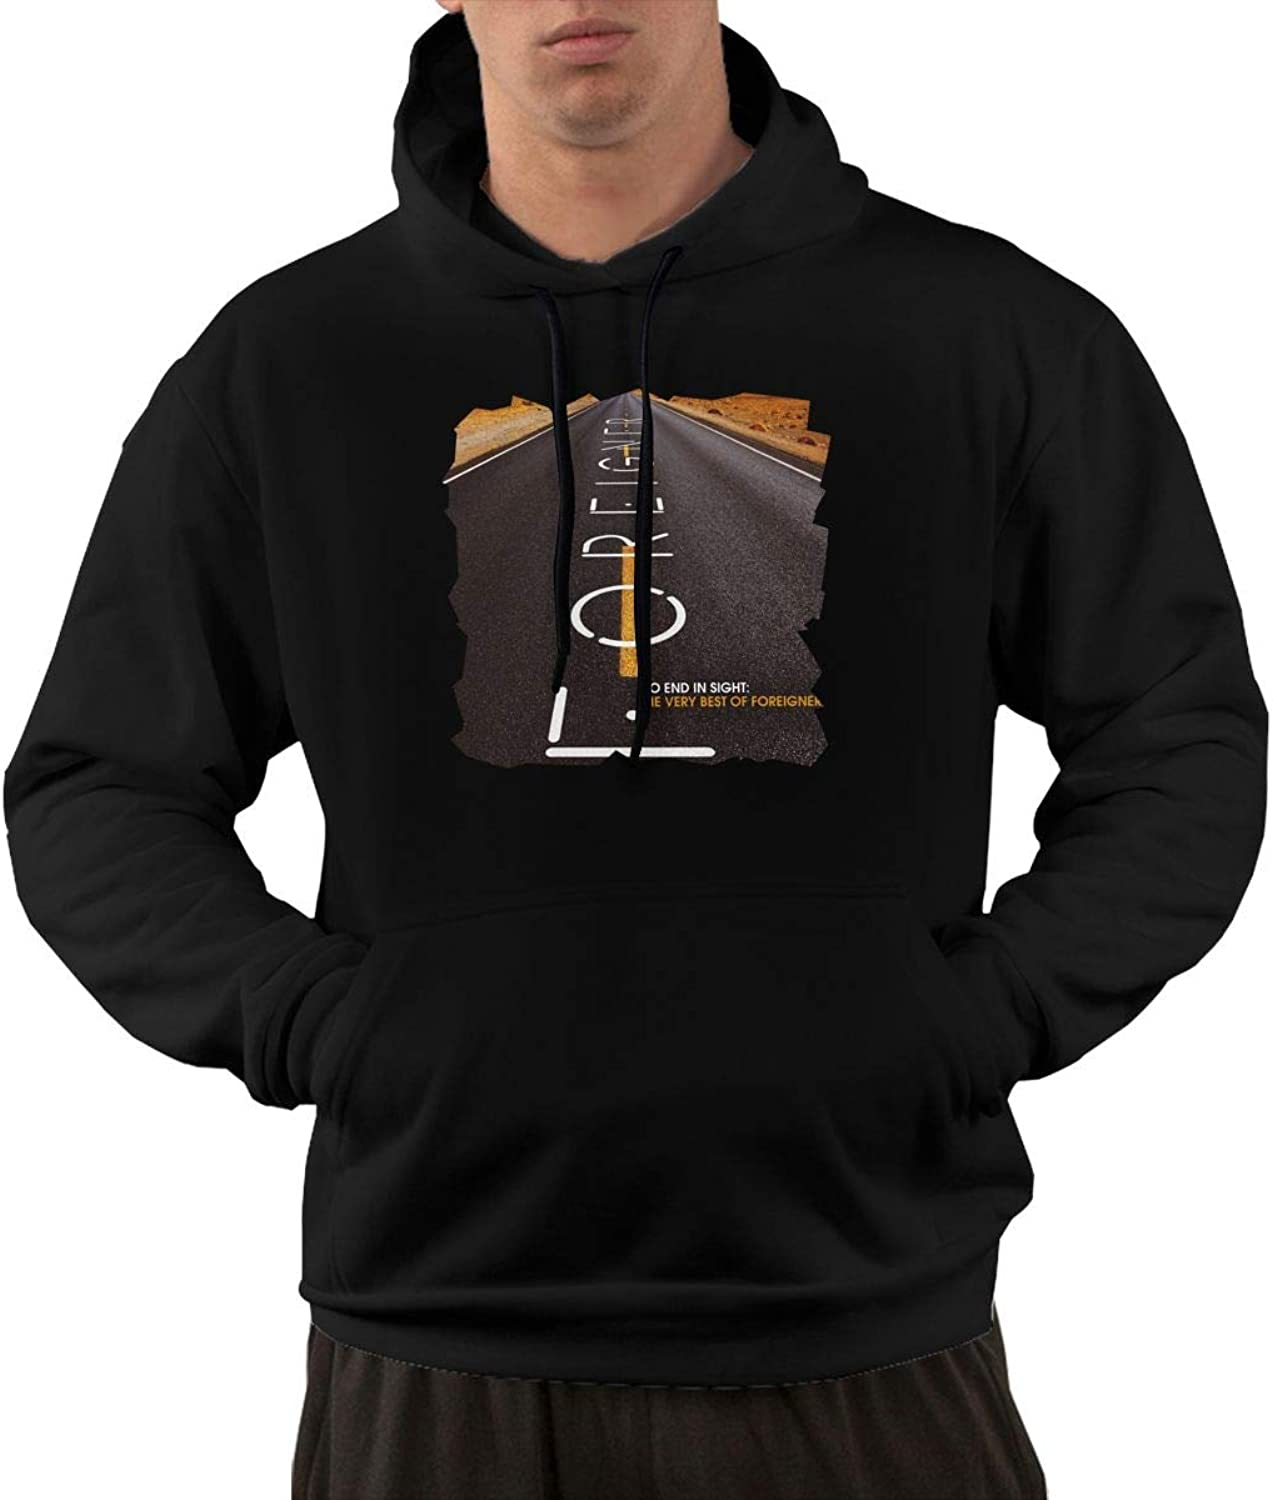 NolanO Foreigner No End In Sight Men's Hoodies Hooded Sweatshirt With Pocket Black